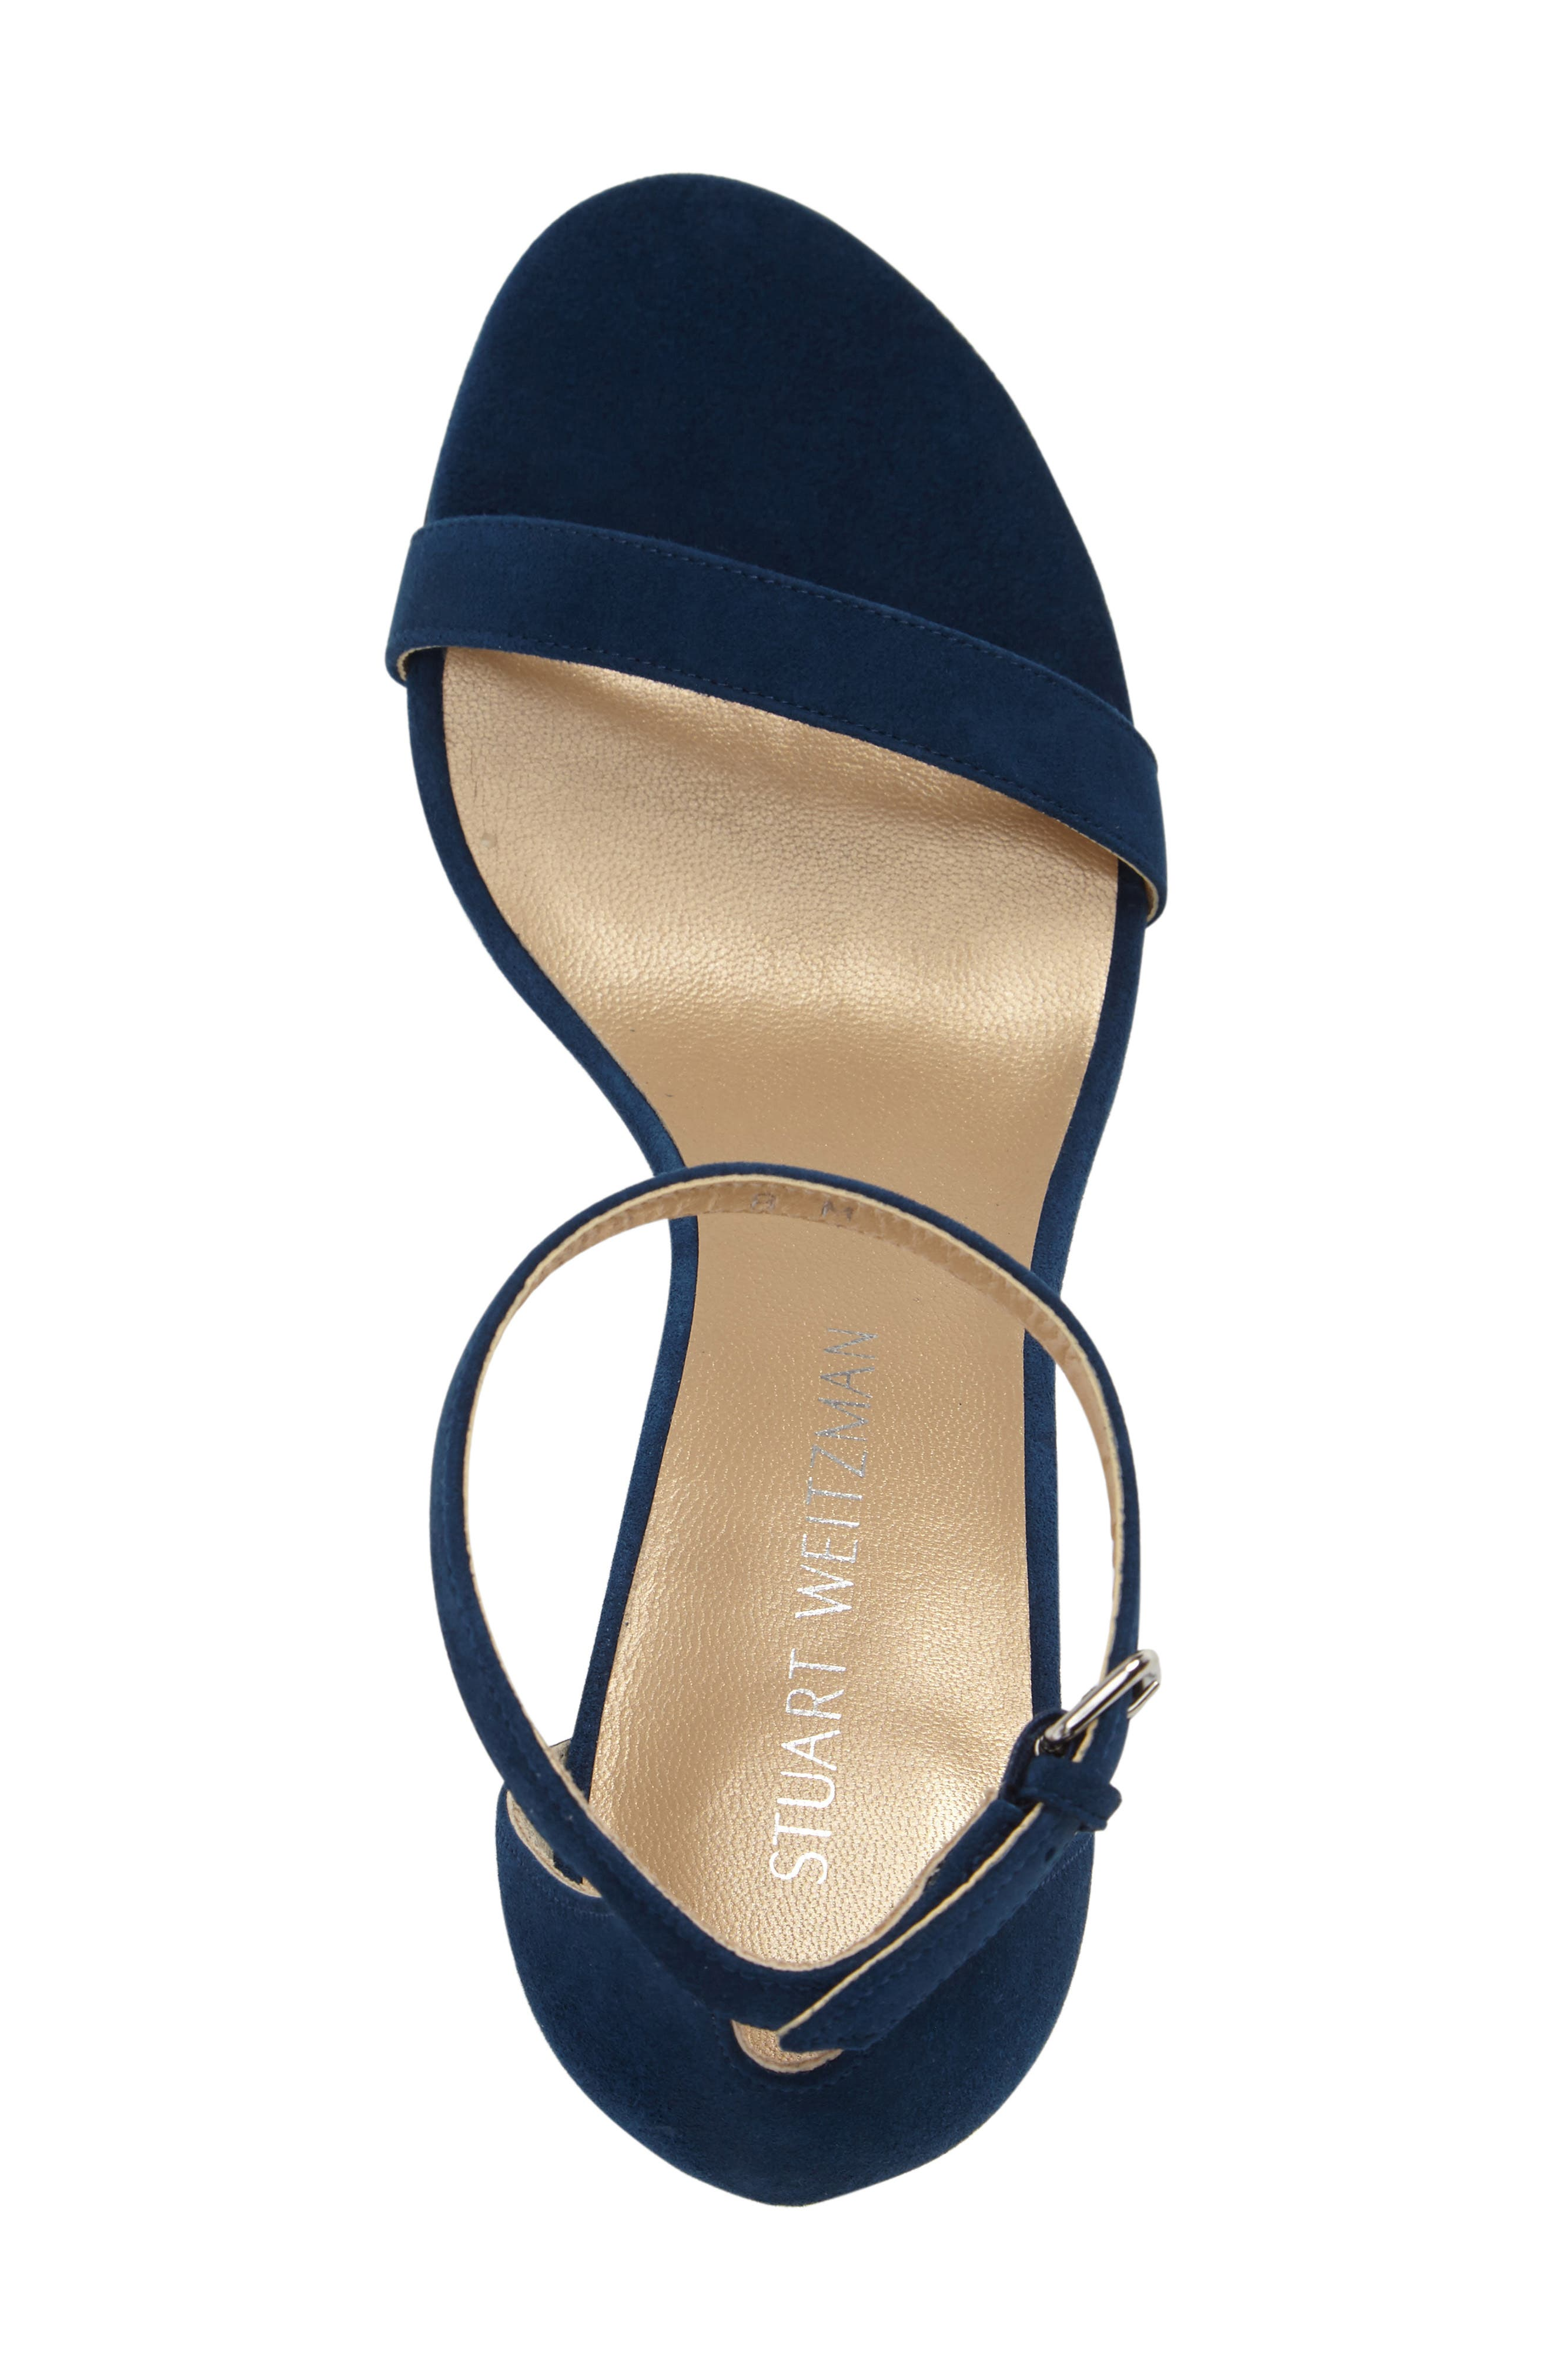 NearlyNude Ankle Strap Sandal,                             Alternate thumbnail 77, color,